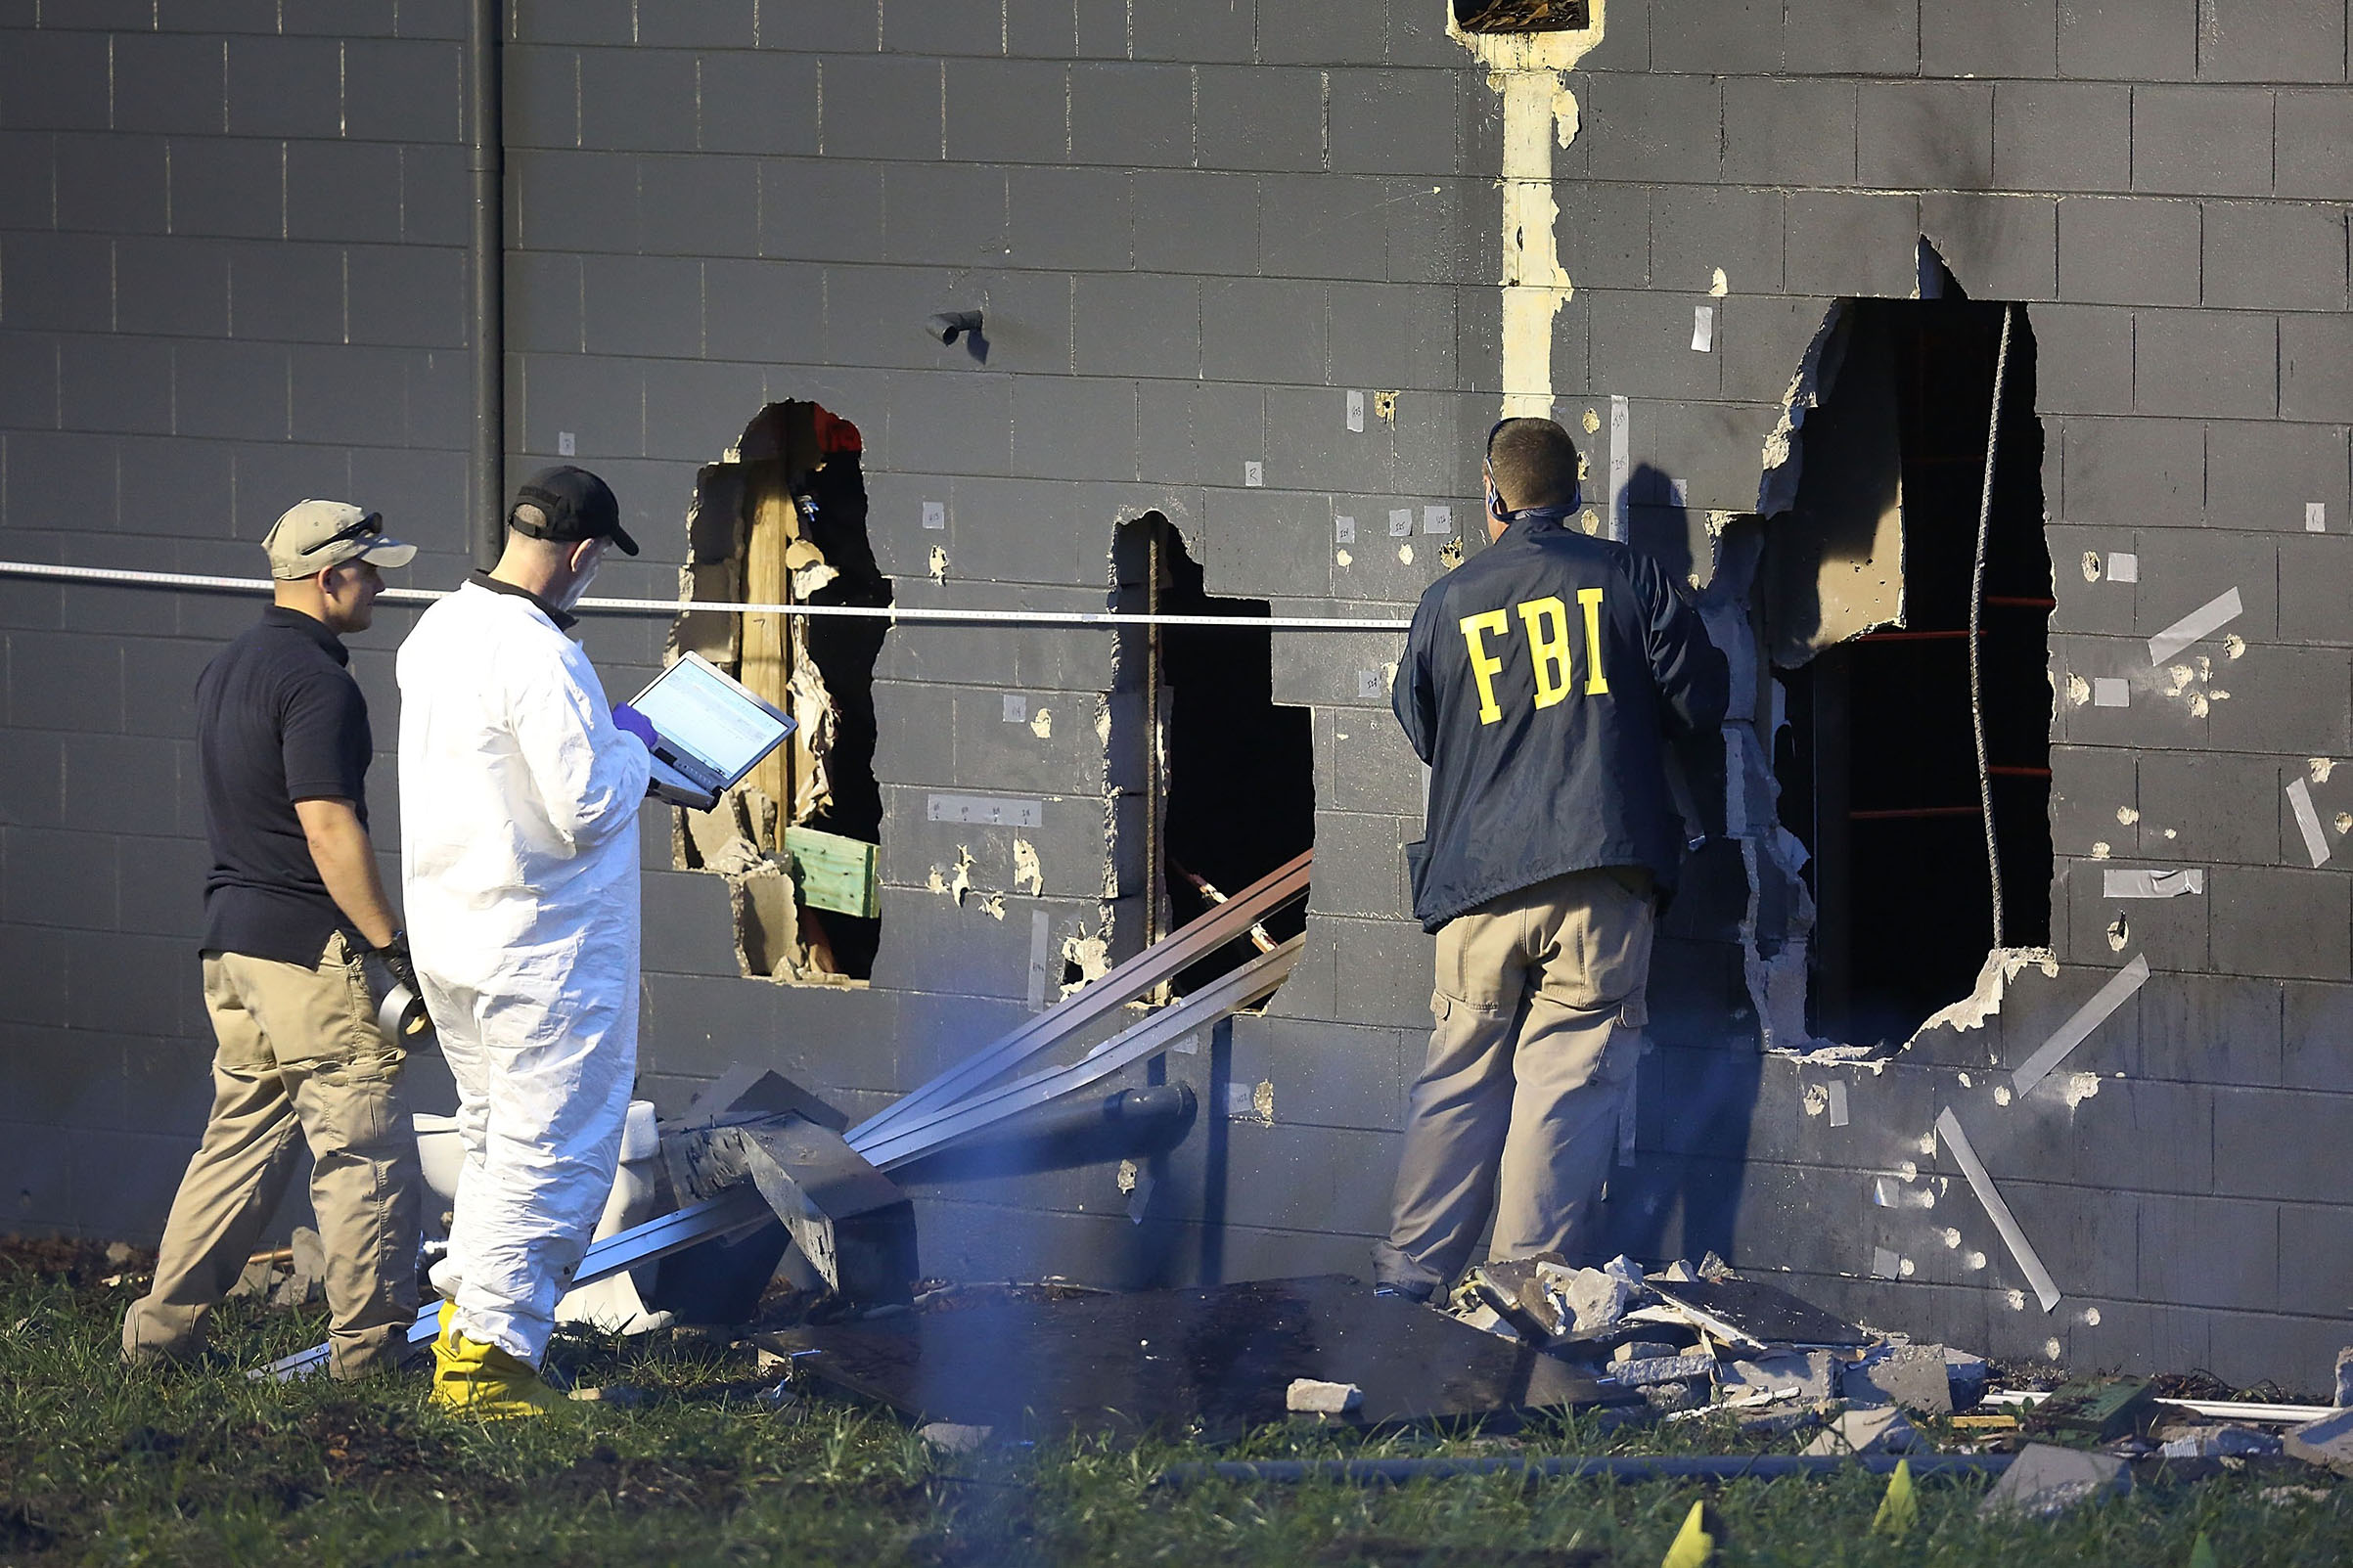 FBI agents at the damaged rear wall of the Pulse nightclub, where Omar Mateen killed 49 people in June 2016